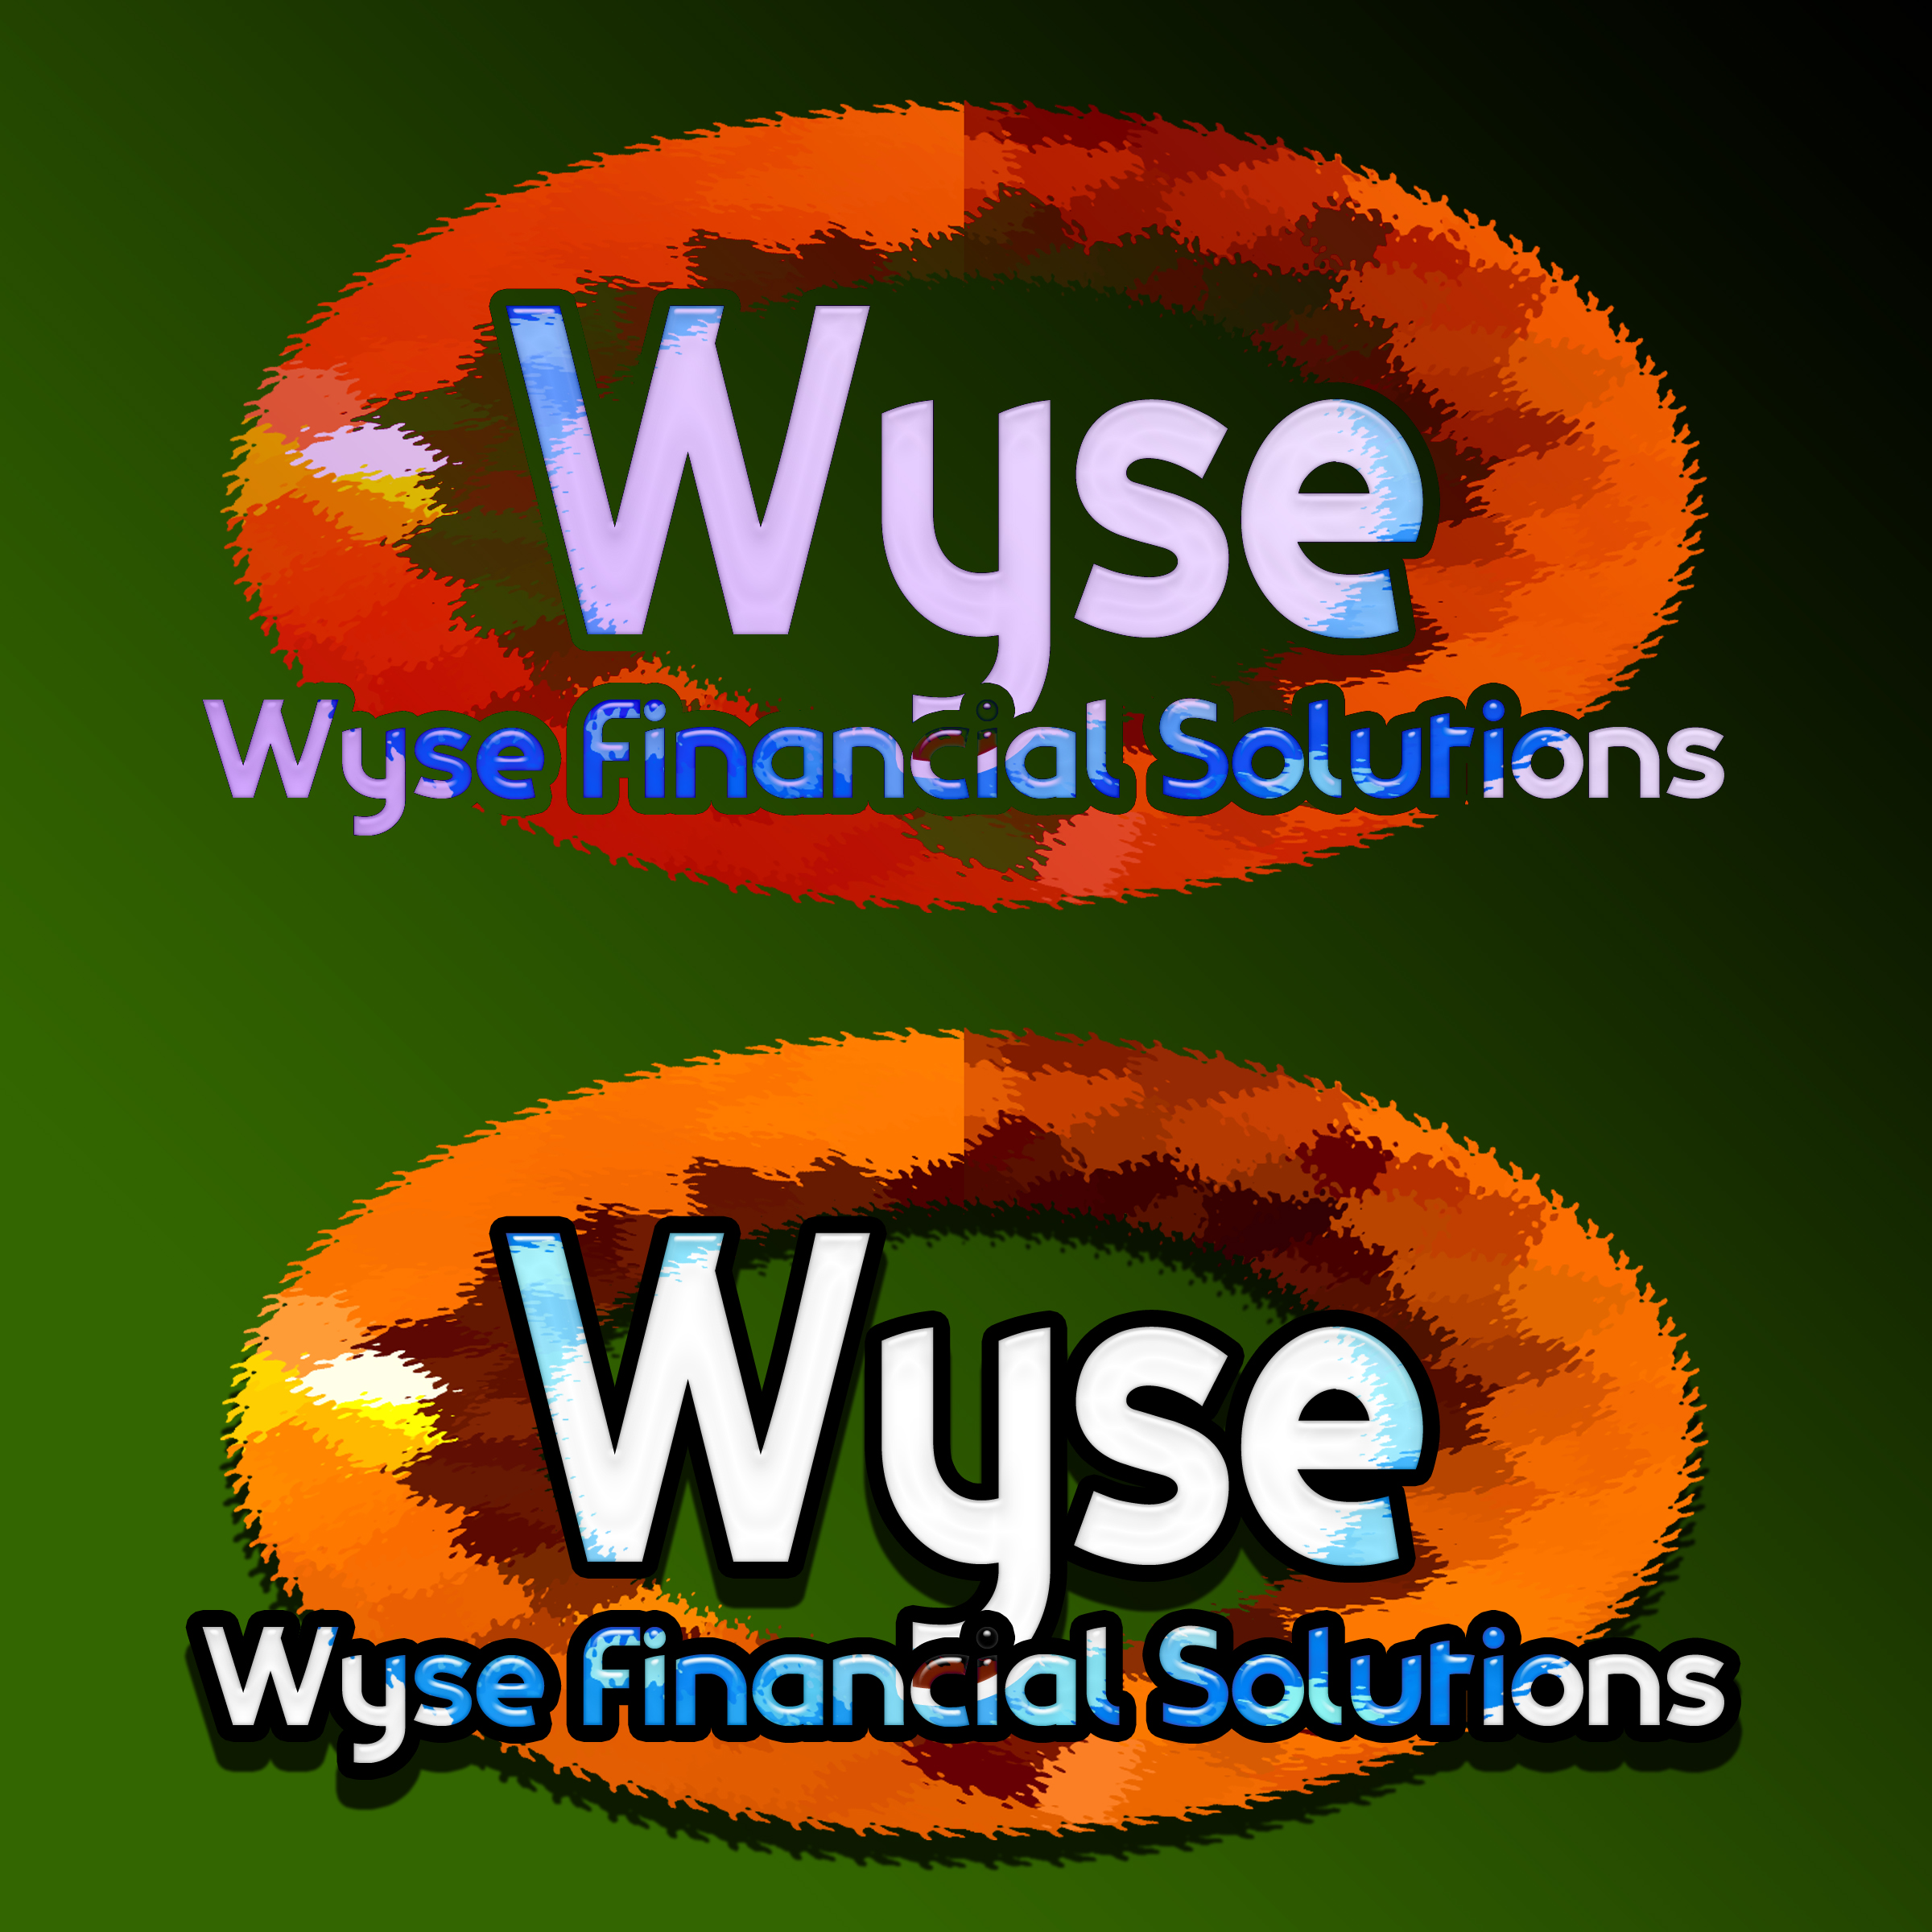 Logo Design by MITUCA ANDREI - Entry No. 21 in the Logo Design Contest Fun Logo Design for Wyse Financial Solutions.